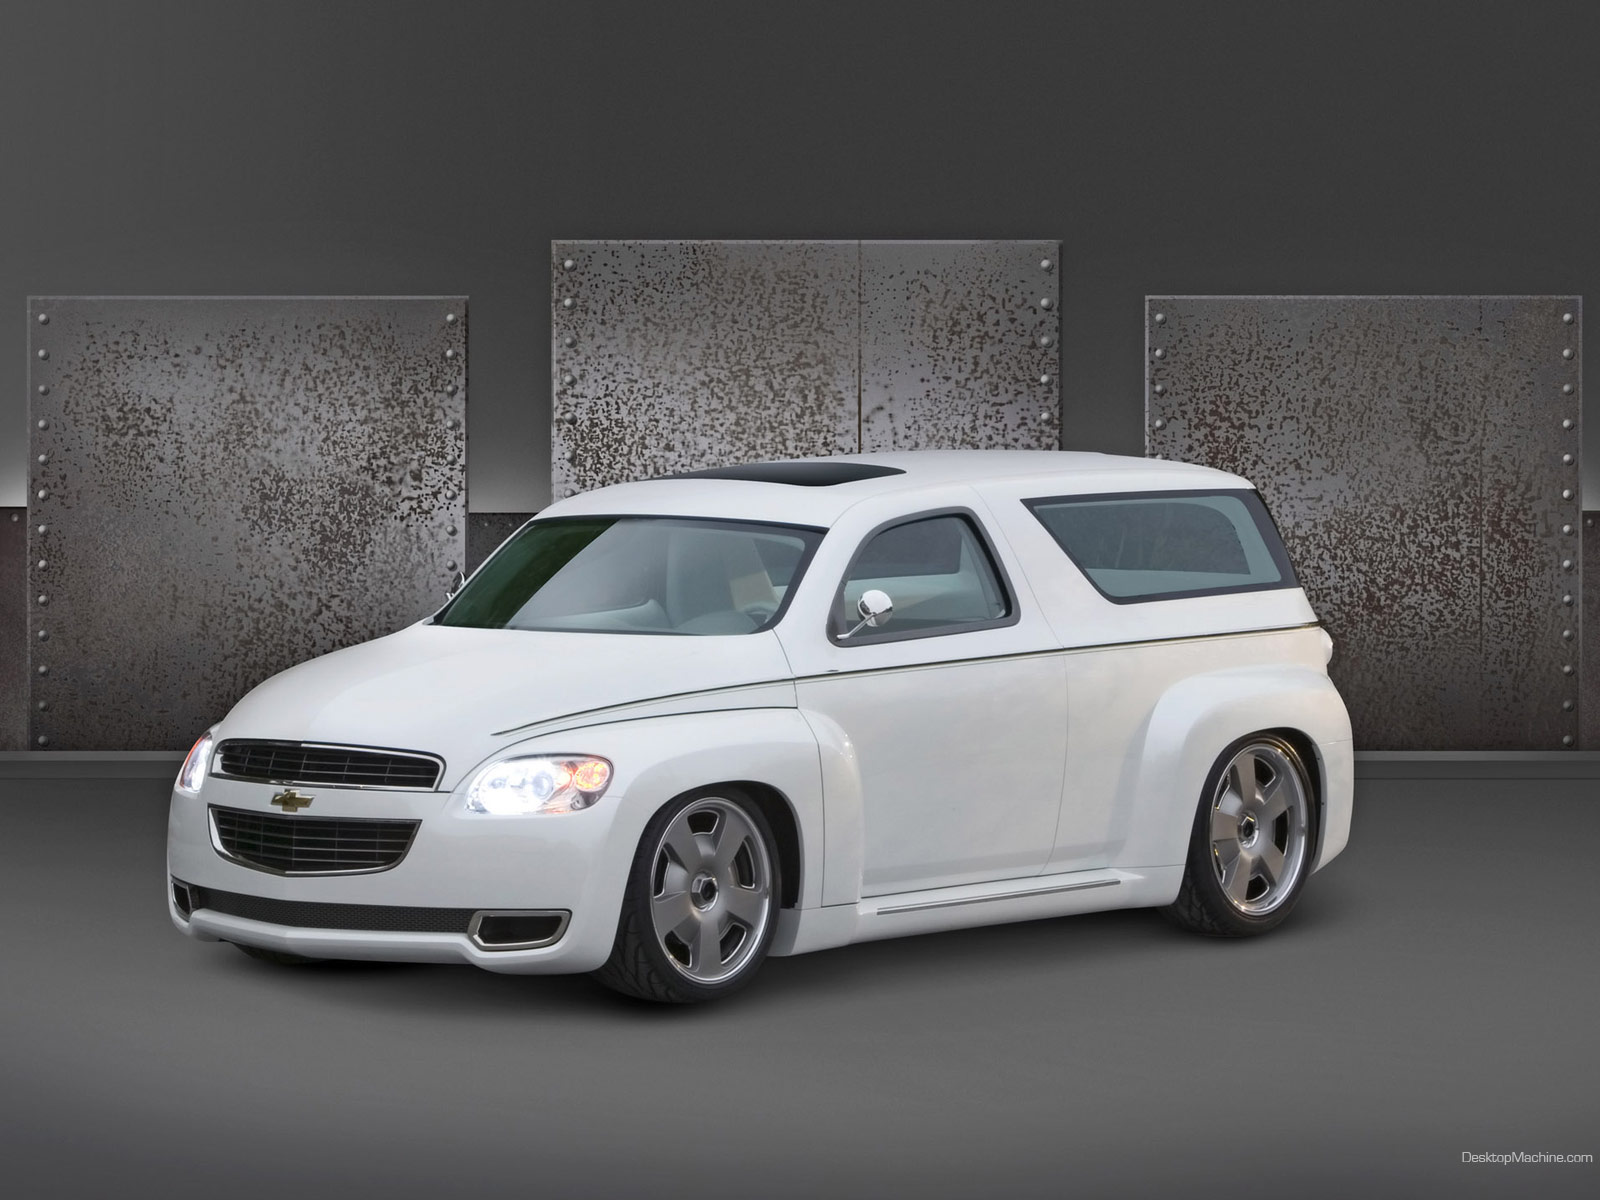 Chevrolet HHR Concept photo 32793